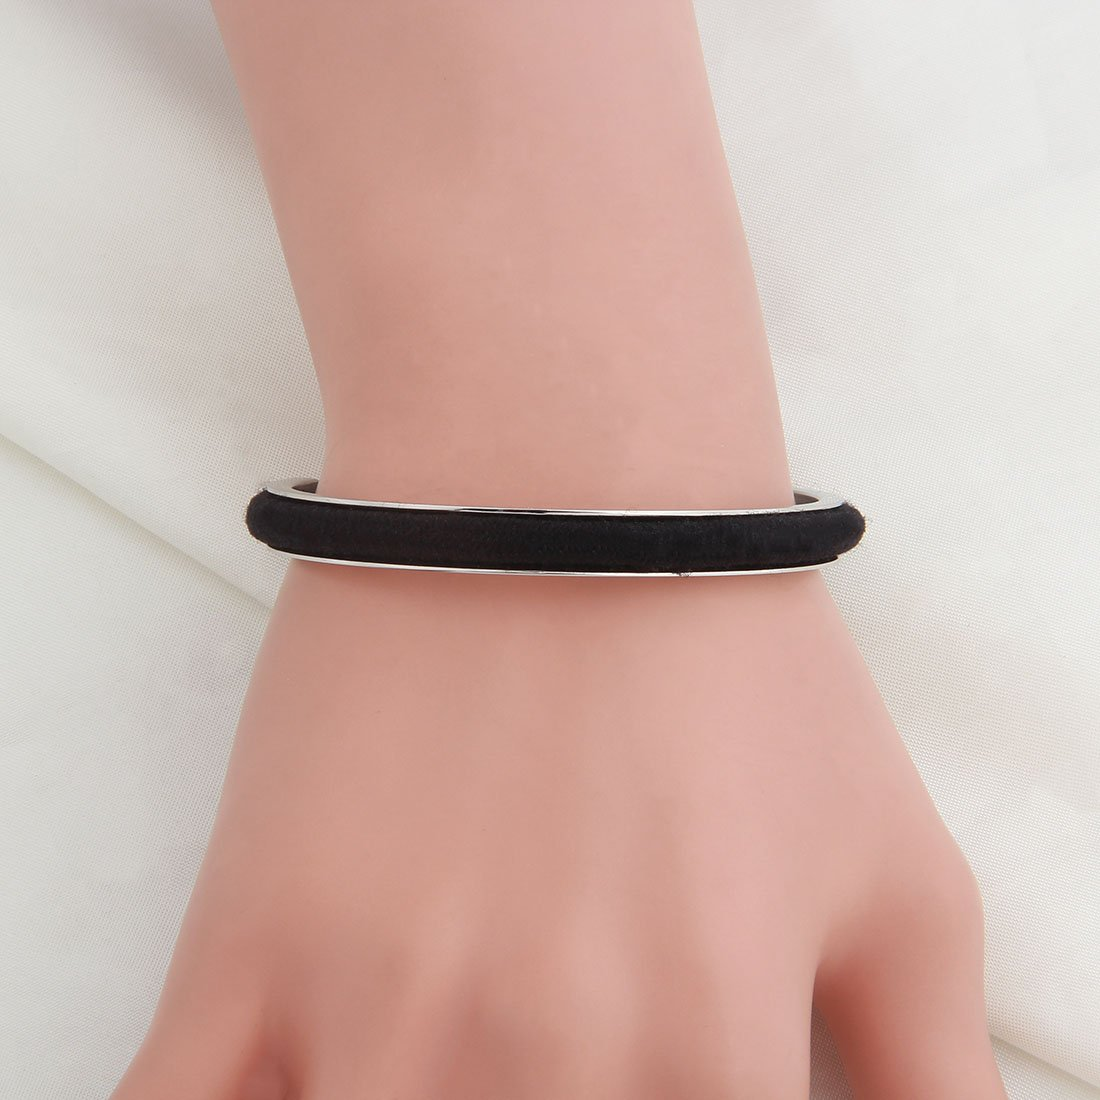 WUSUANED Youre My Person Hair Tie Grooved Cuff Bangle Bracelet for BBF Lovers Family